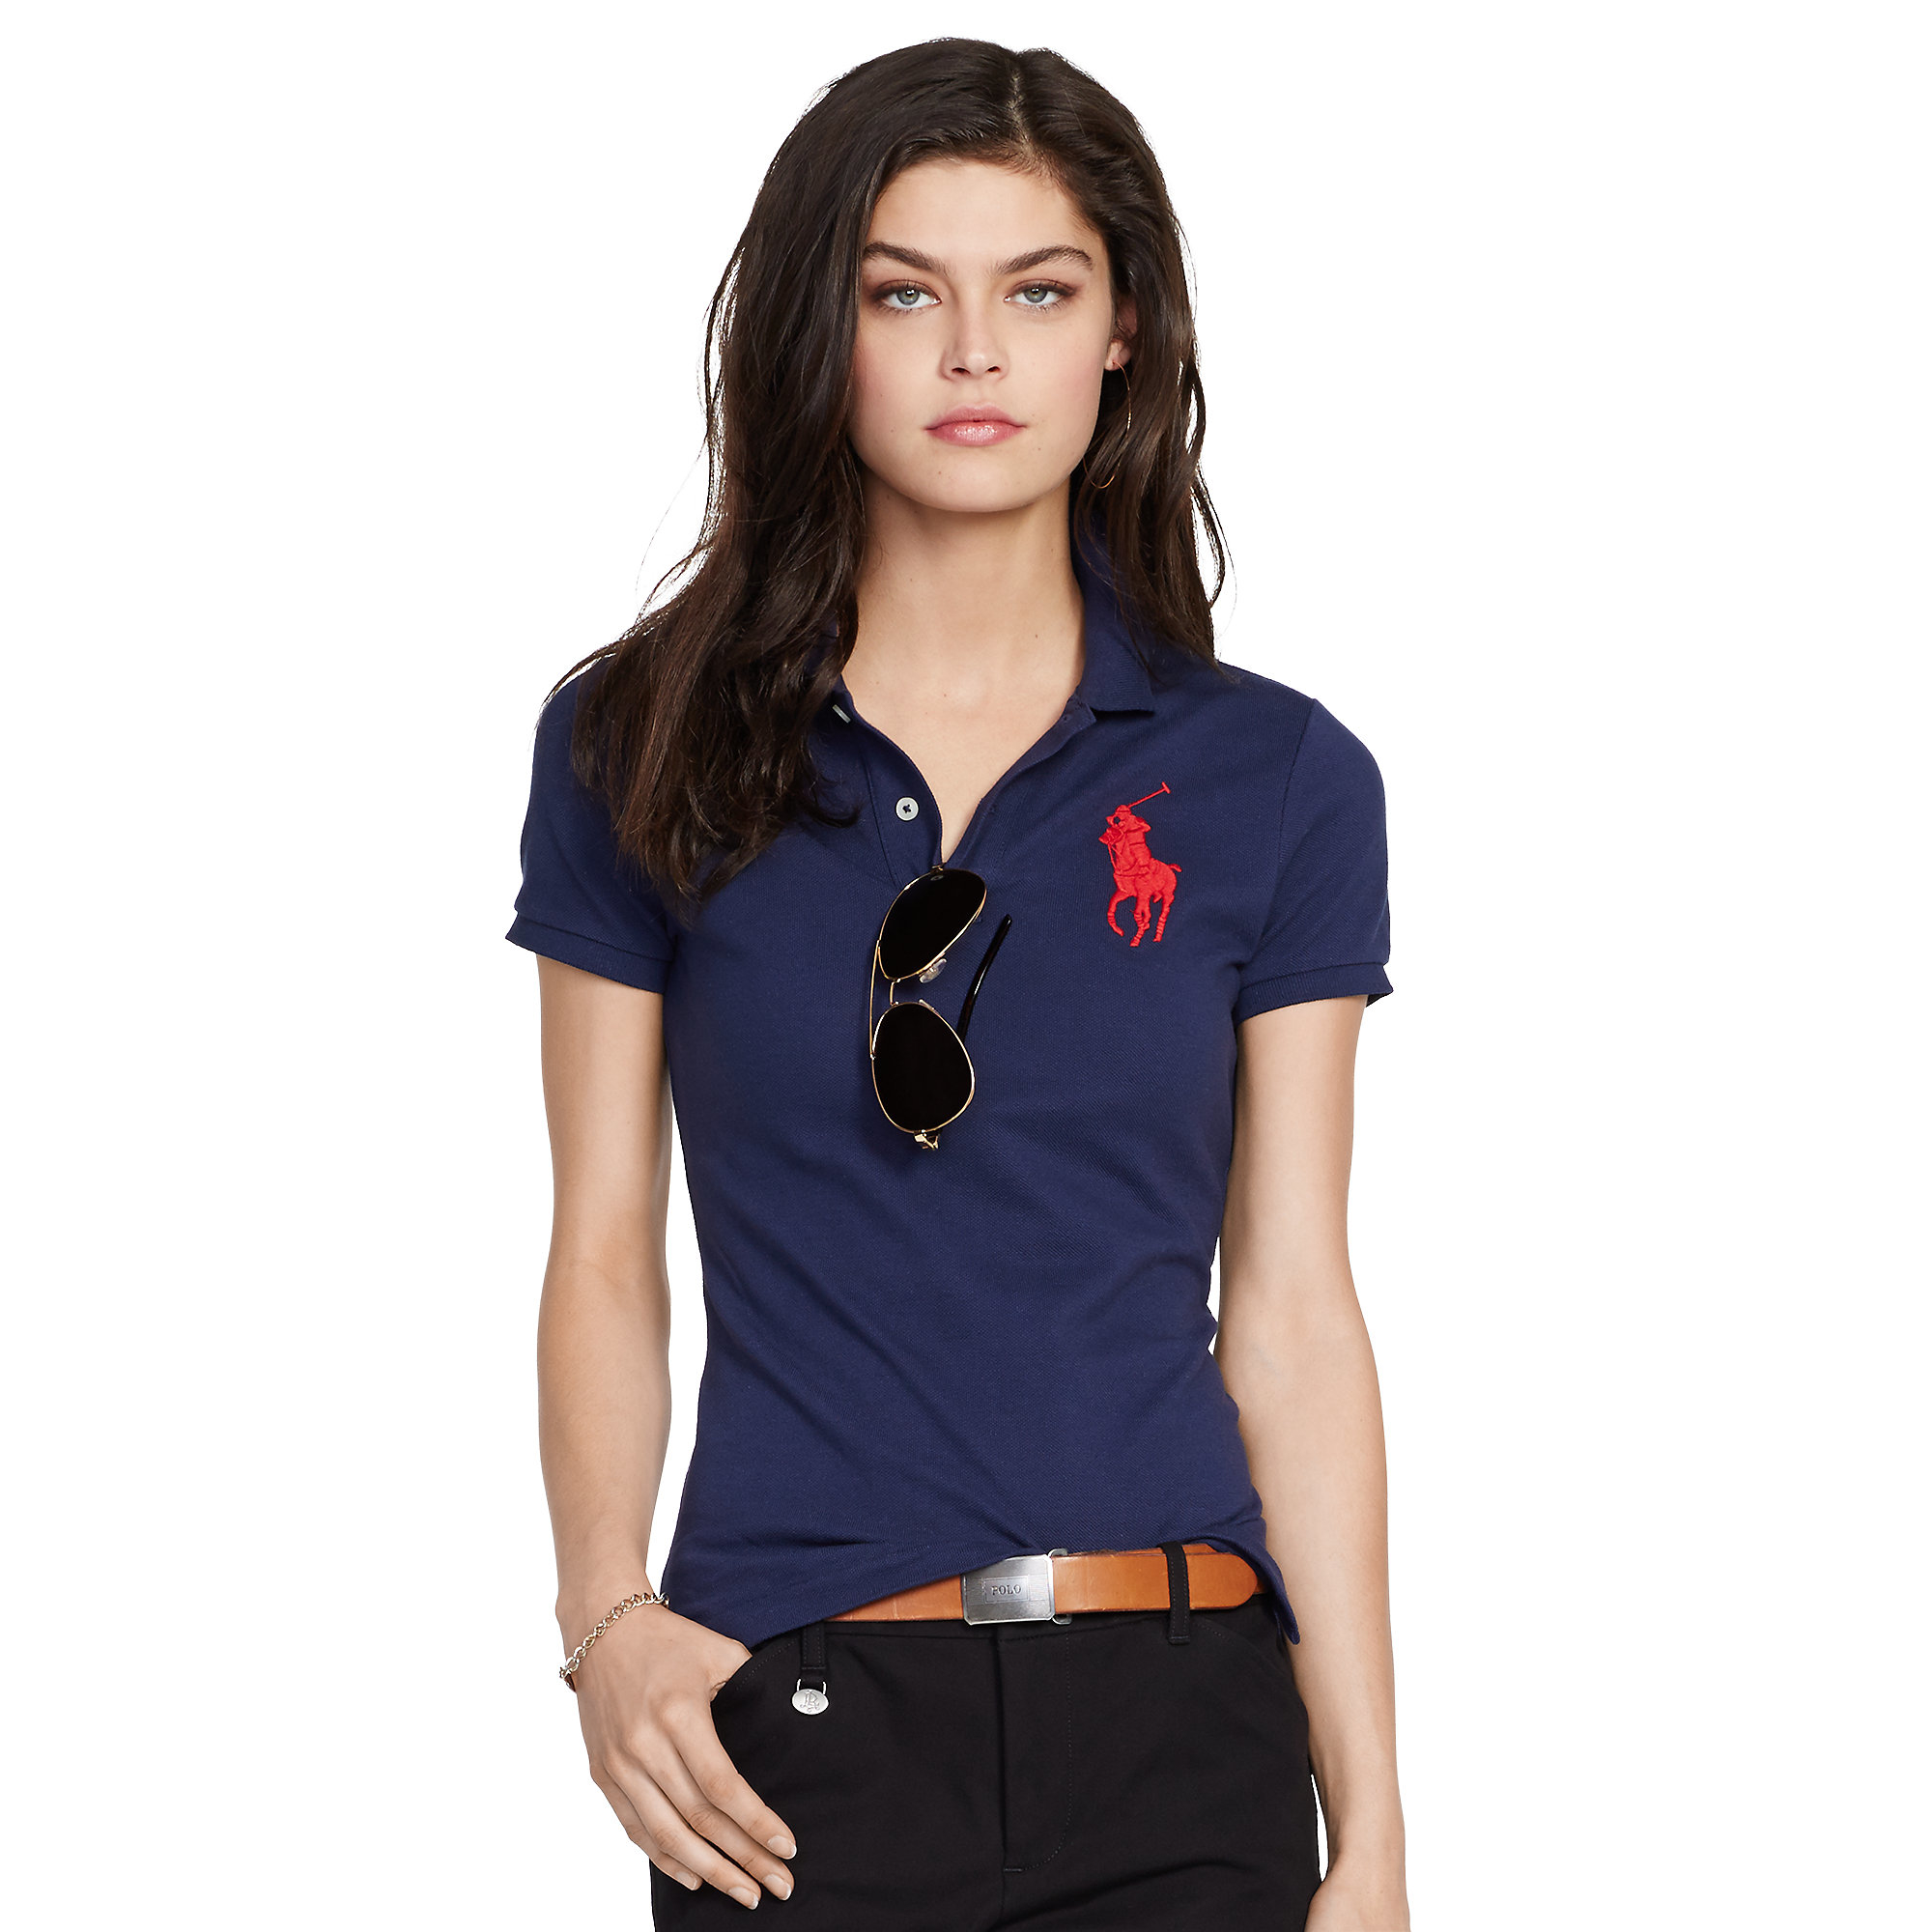 Lyst - Polo Ralph Lauren Skinny-fit Big Pony Polo Shirt in Blue 3ceef9523f74